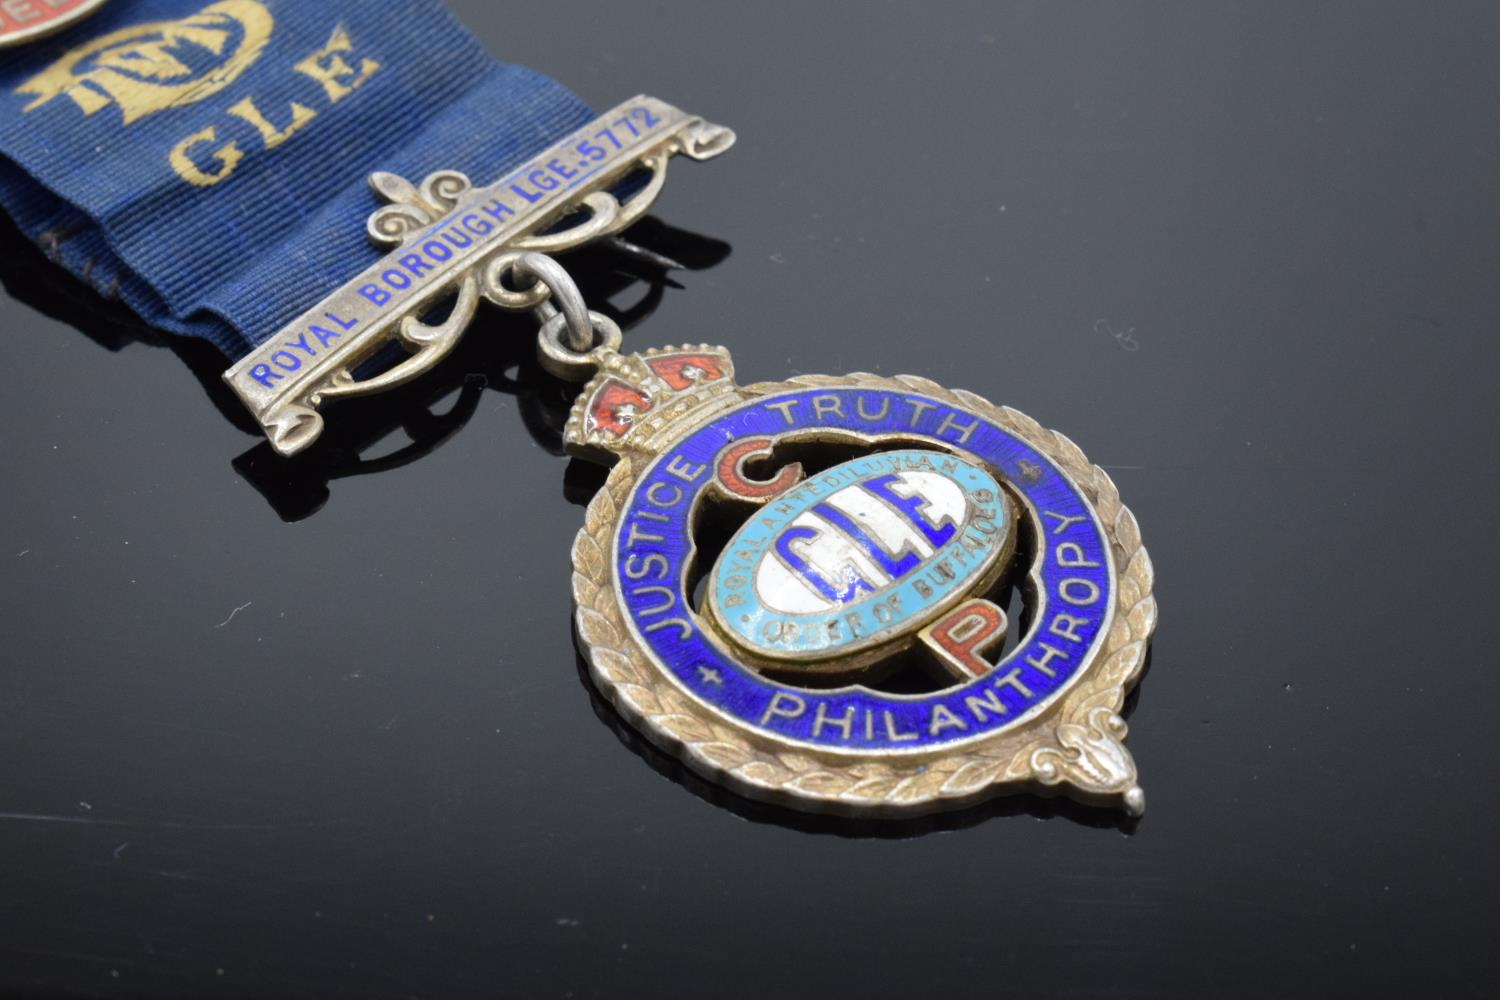 A silver medal and ribbon presented to Arthur J Thorne by the Royal Borough Lodge (GLE) Birmingham - Image 4 of 12